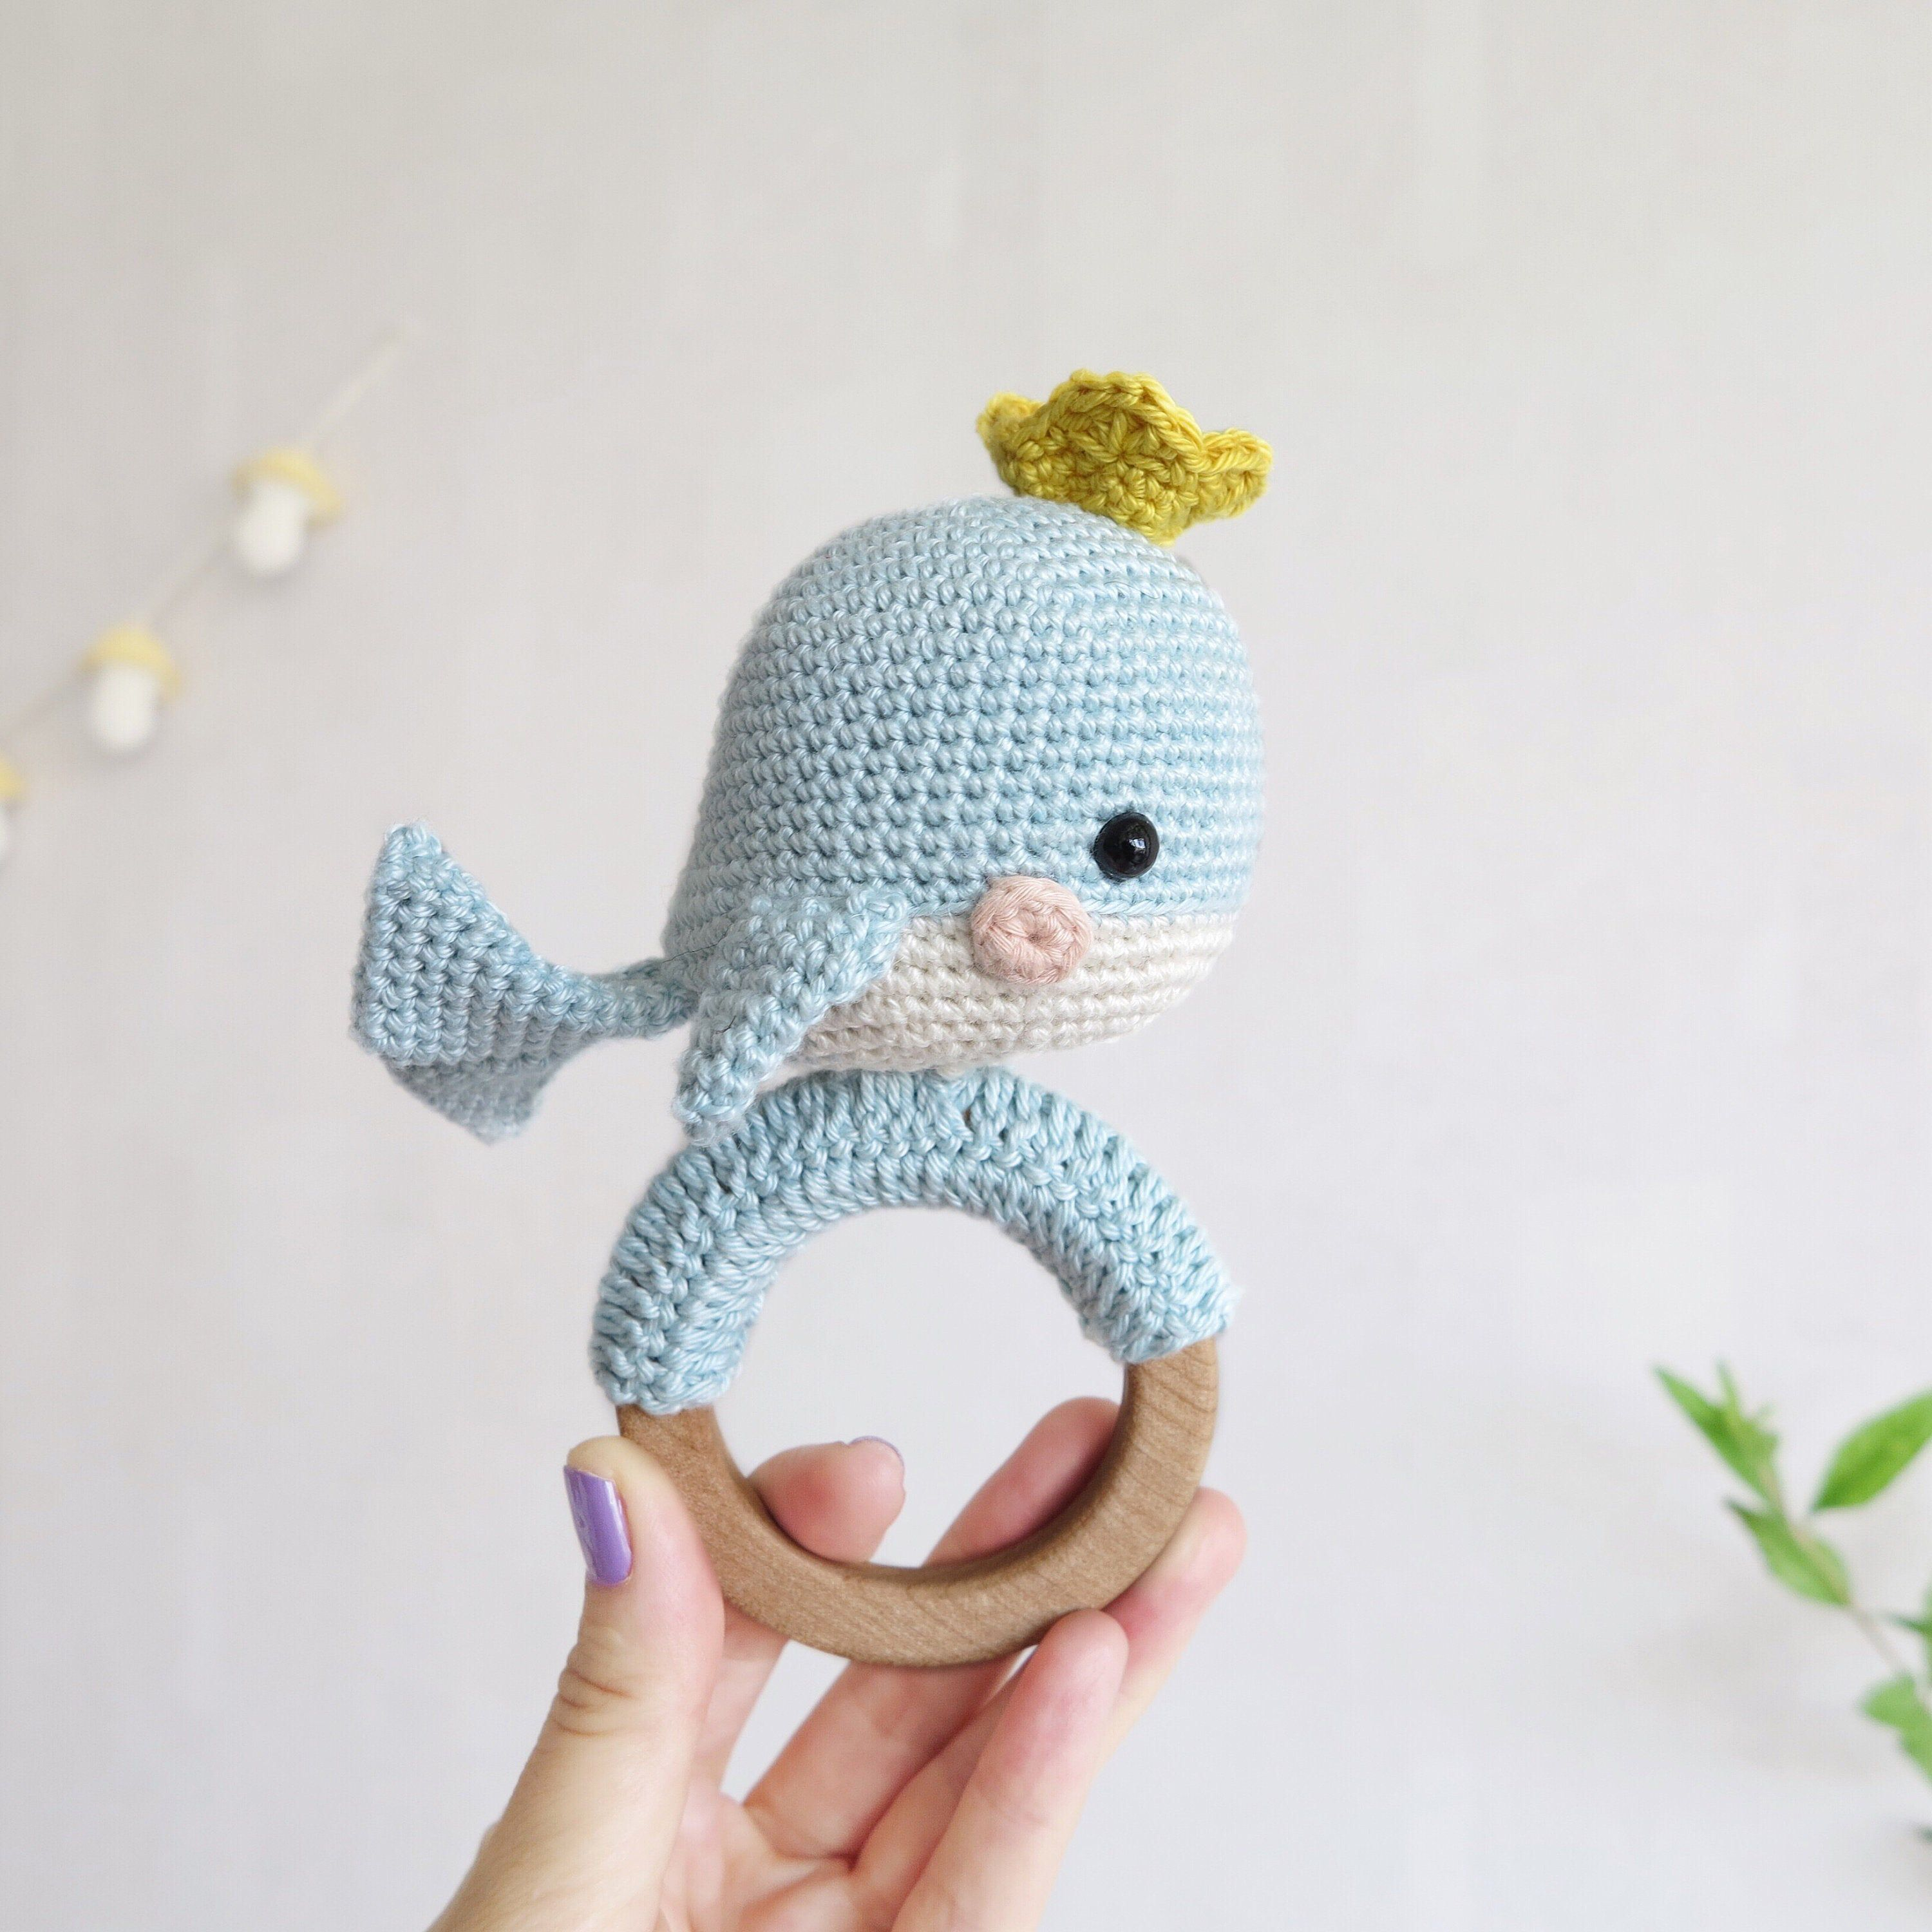 Walden the Narwhal (or Whale!) amigurumi pattern | hookabee | 3000x3000